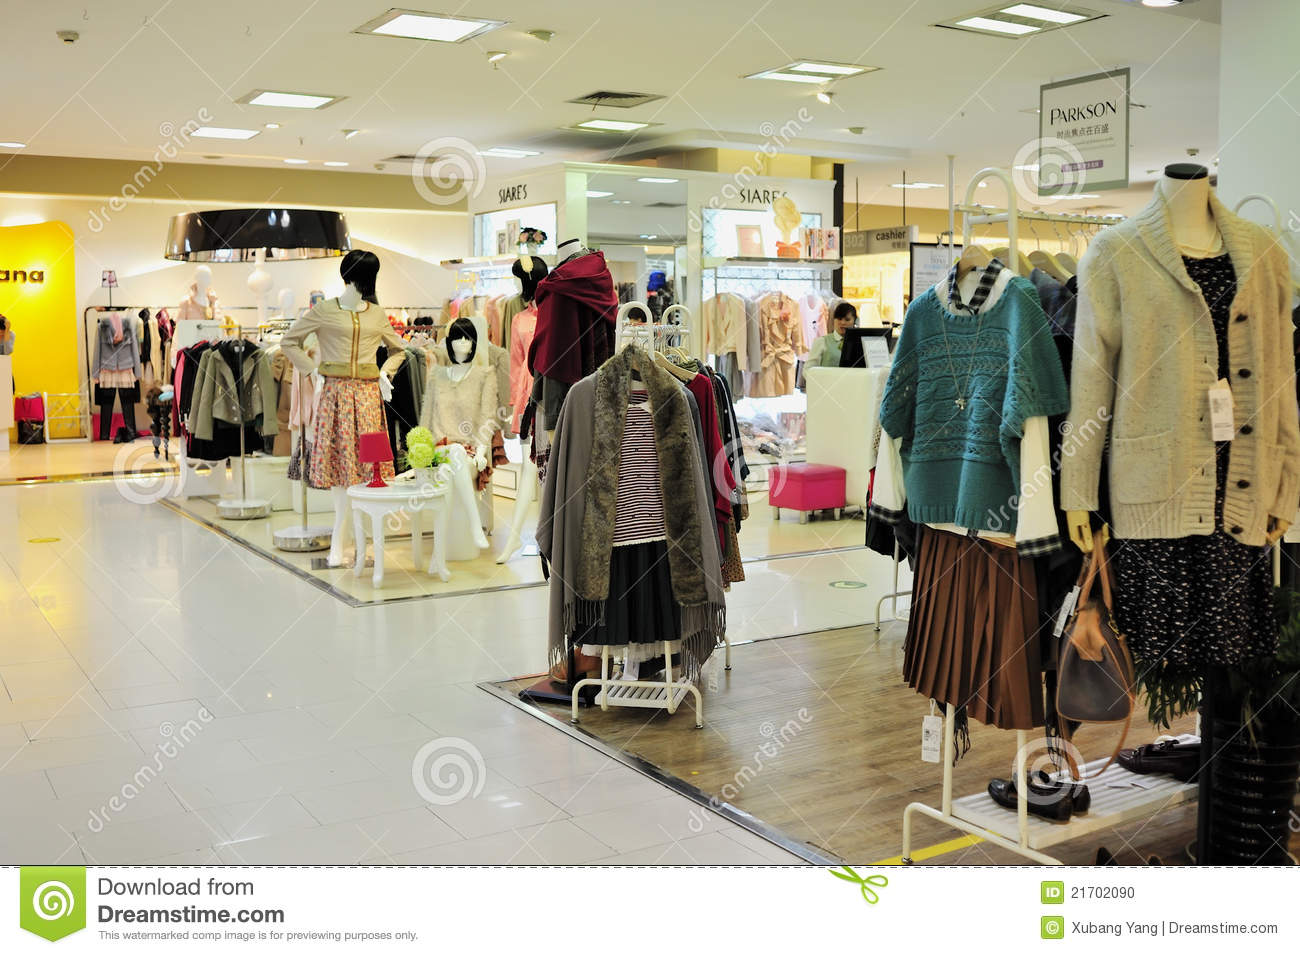 Women's fashion clothing stores